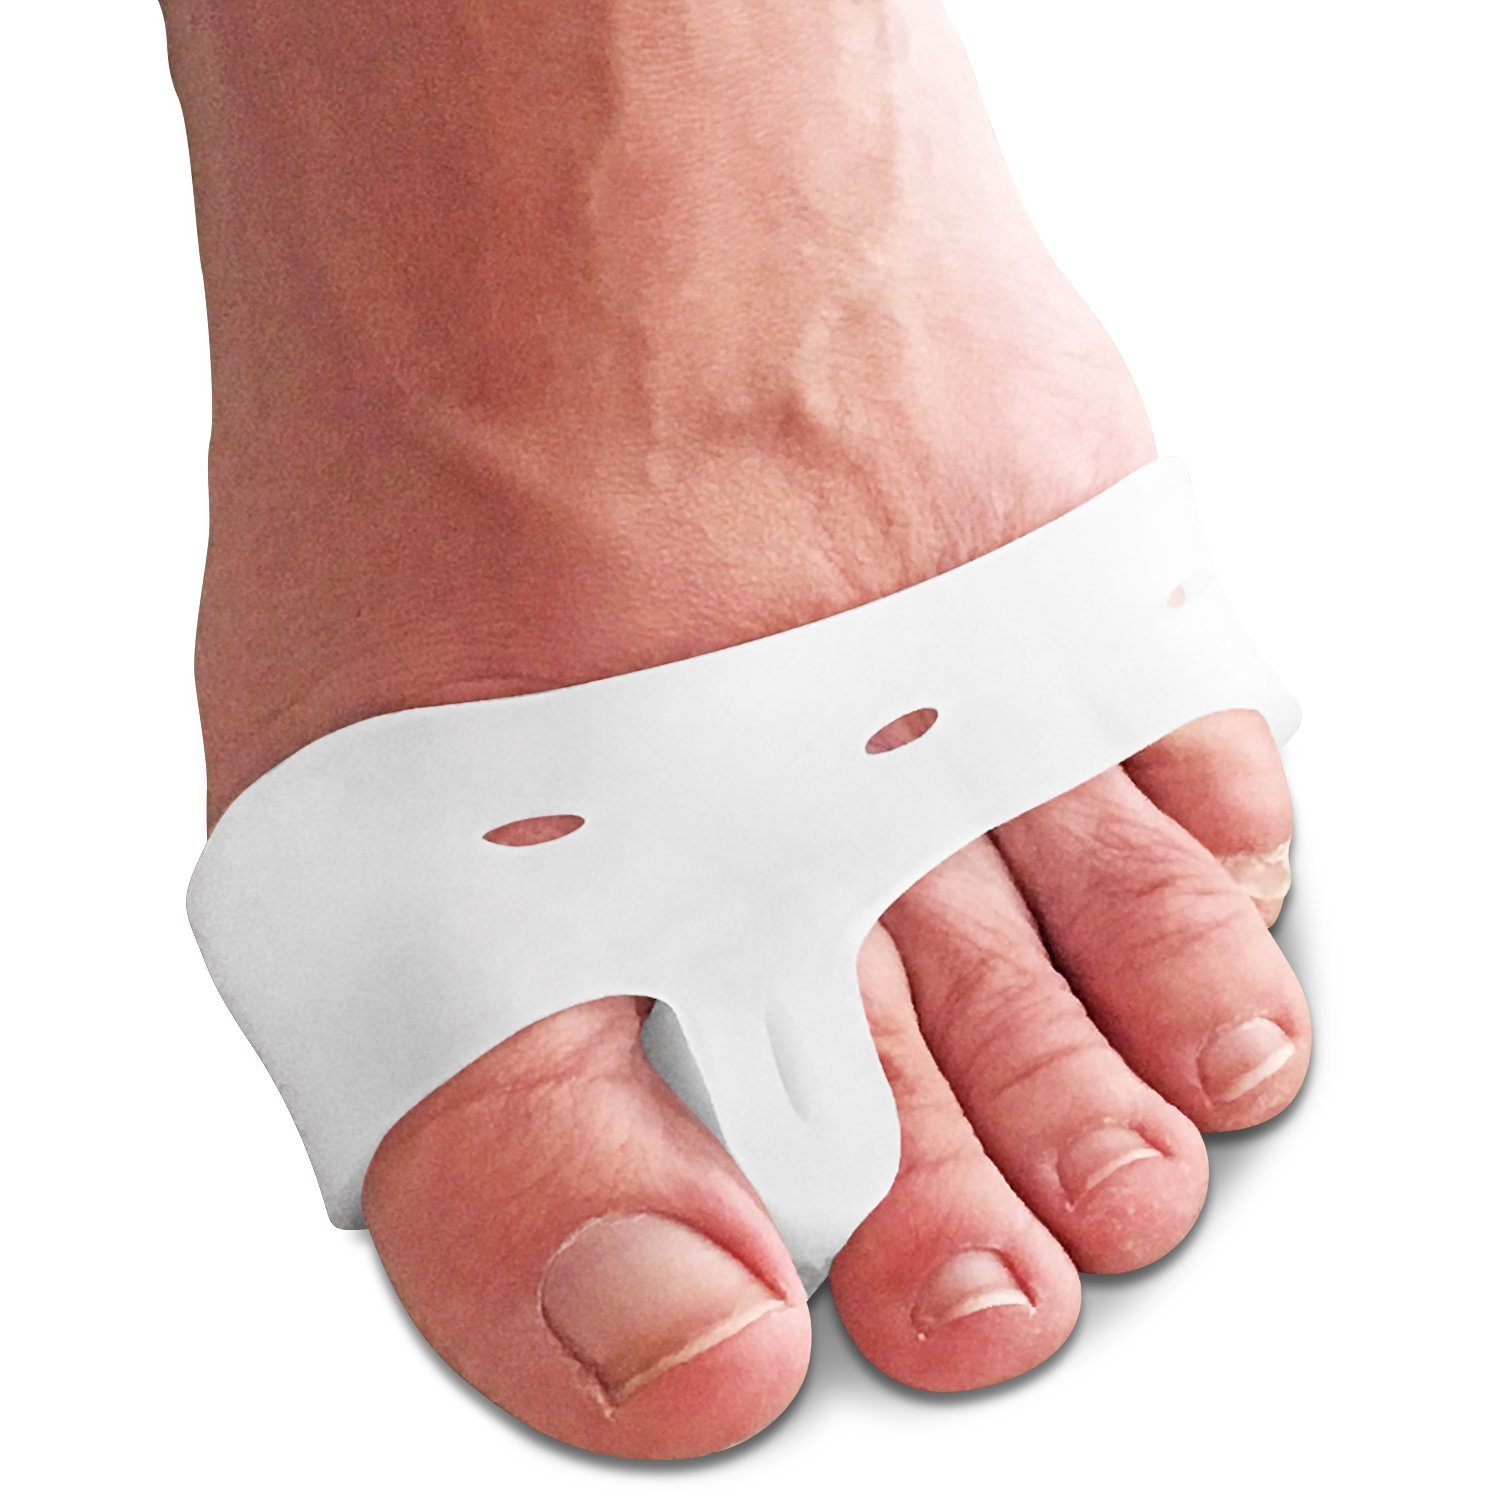 Amazon.com: JIAHAO Gel Toe Separators Hammer Toe Straighteners Big Toe Relief Toe Spacers Set 1 Pair Gel Spreaders to Correct Toes in Shoes 1 Pair Bunion ...